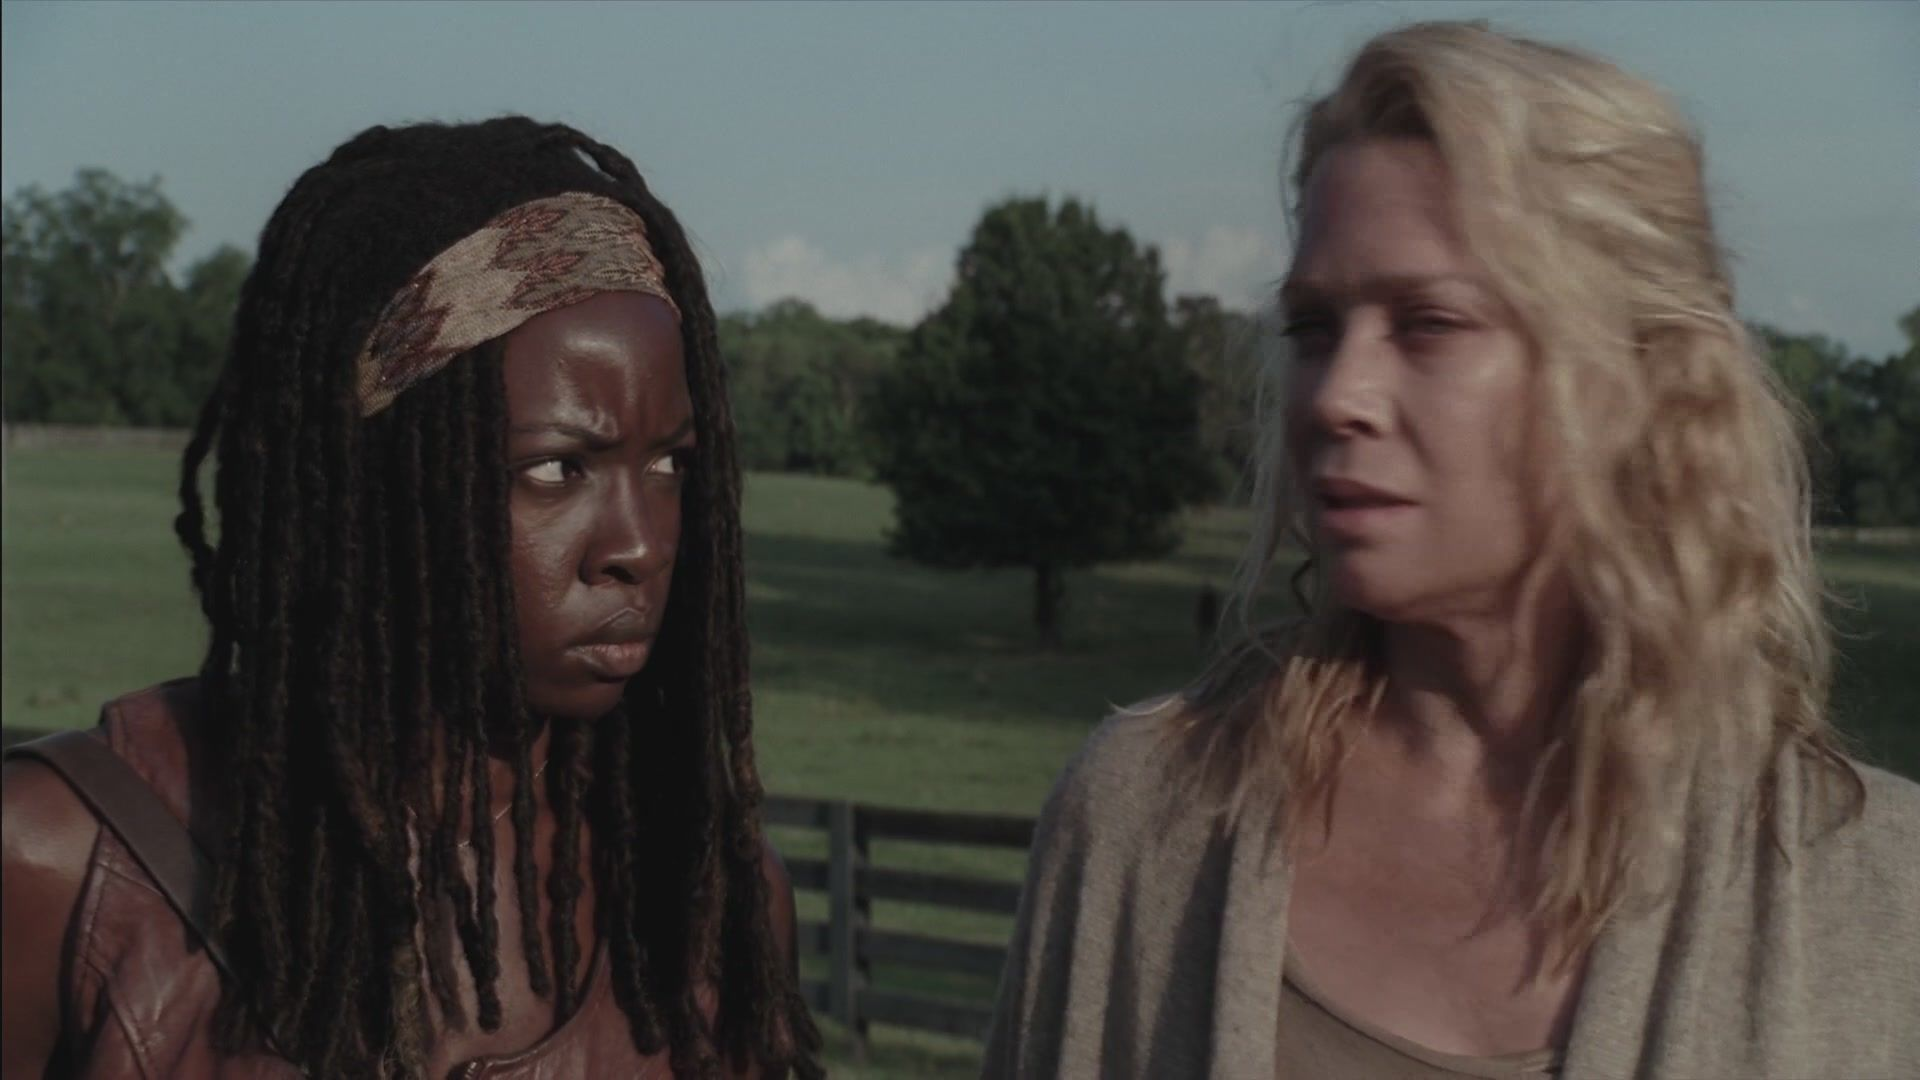 After witnessing an accident, Andrea and Michonne are introduced to a new community of survivors. As conflicts arise with their new acquaintances, a decision must be made.